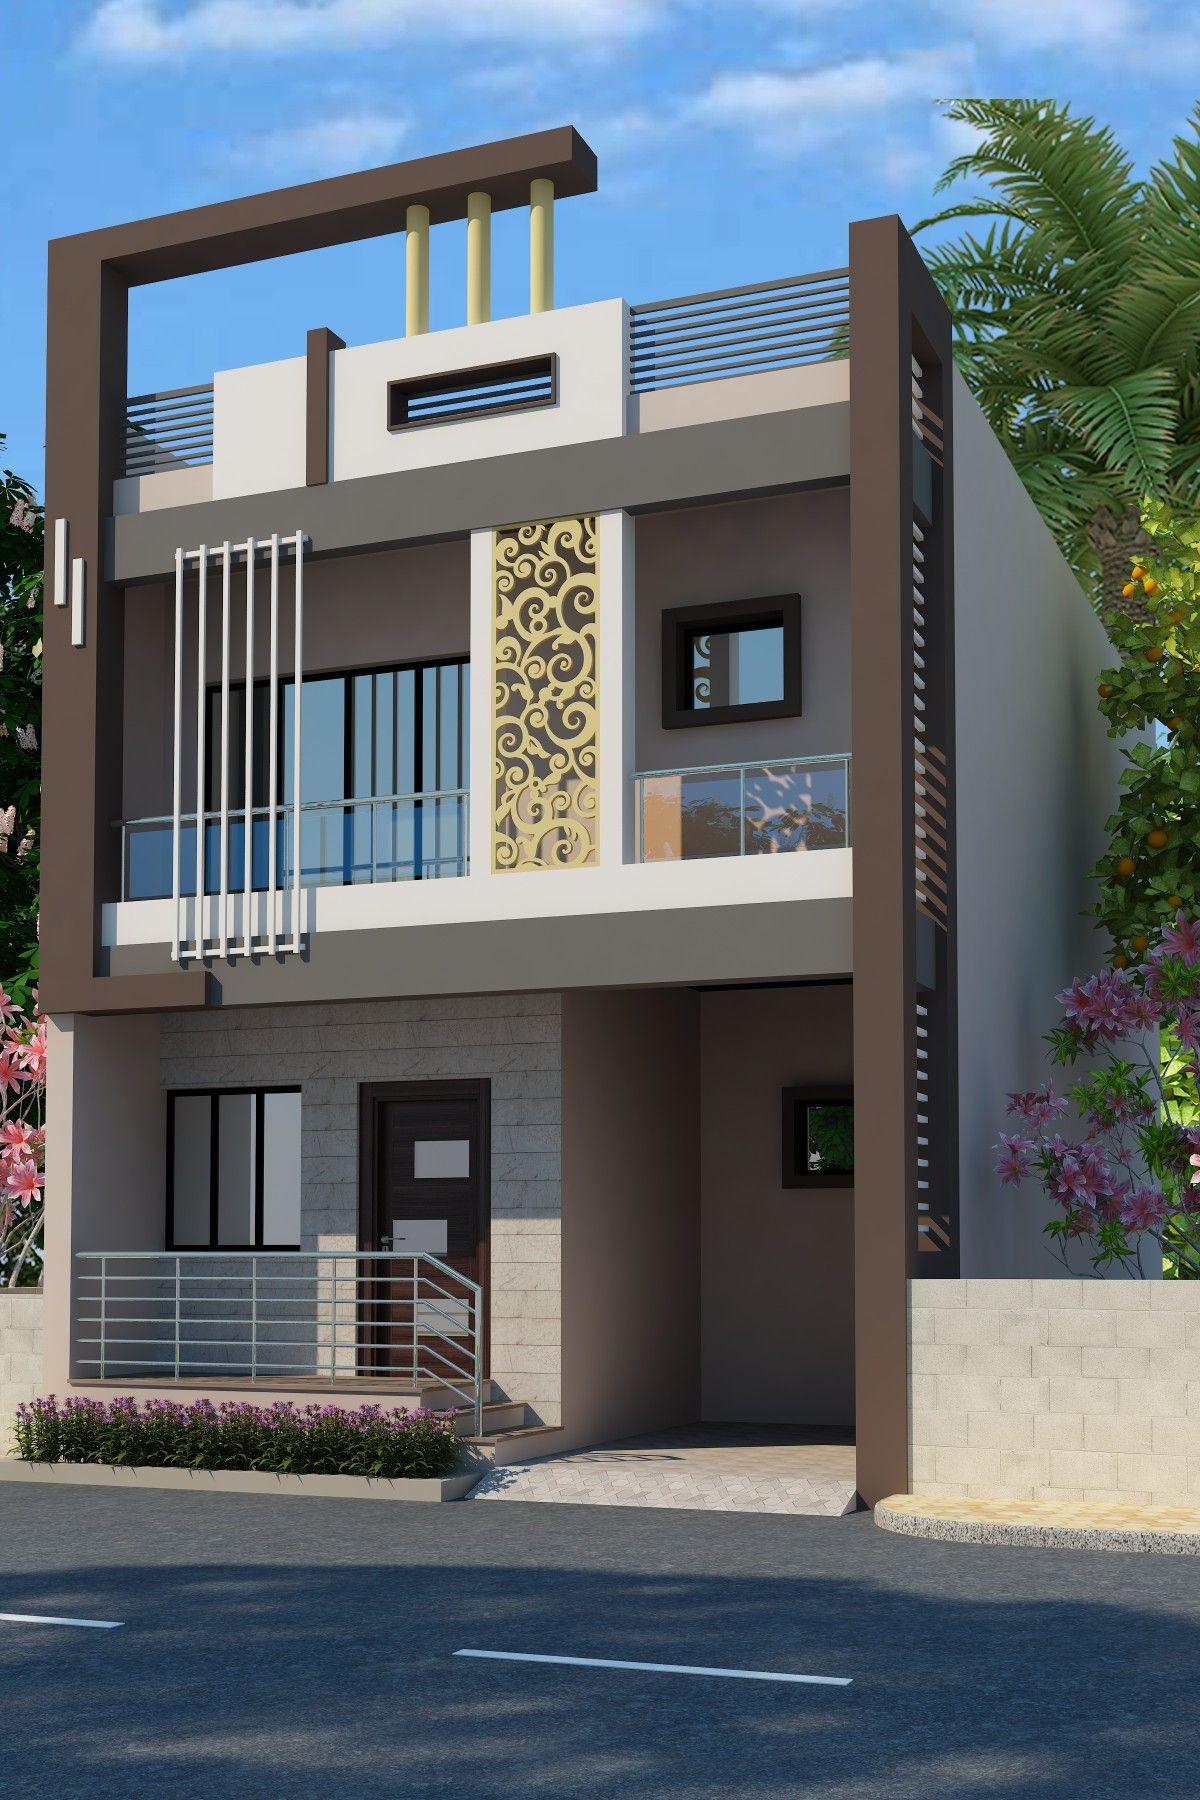 Beautiful Building Elevation In Front Elegant New Design with Images